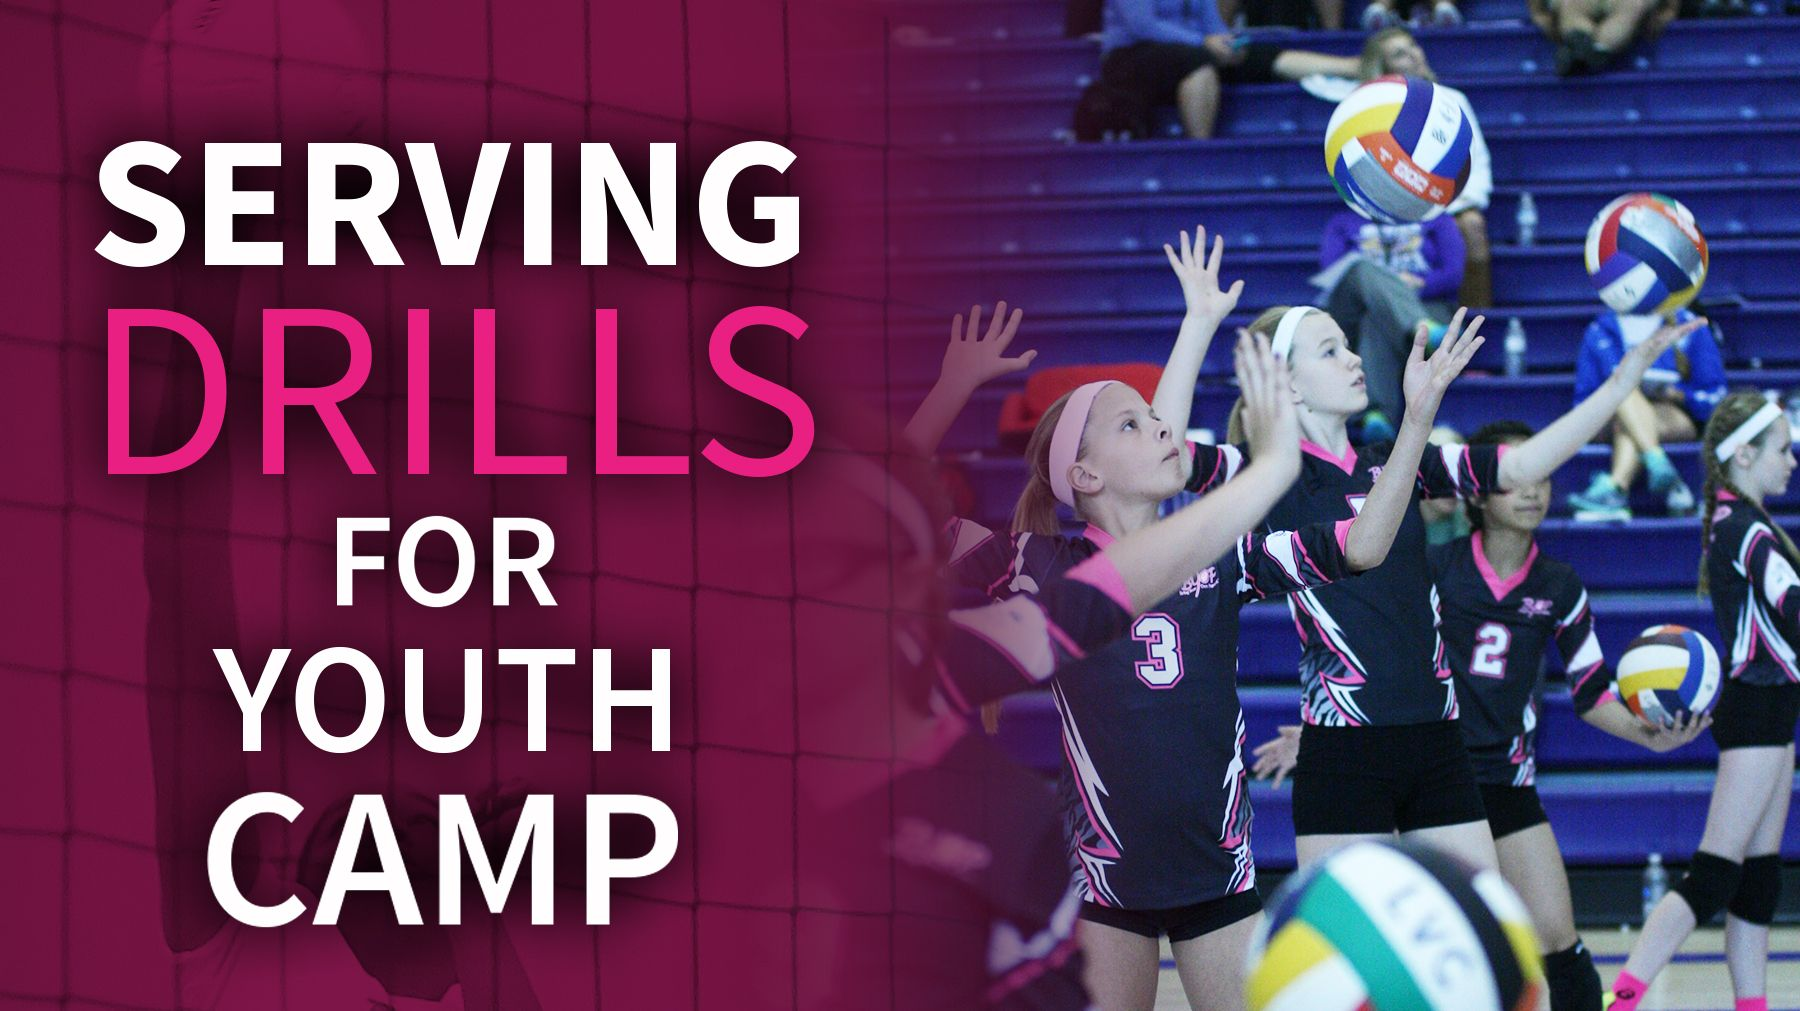 Serving Games For Youth Camp Coaching Volleyball Volleyball Serving Drills Youth Camp